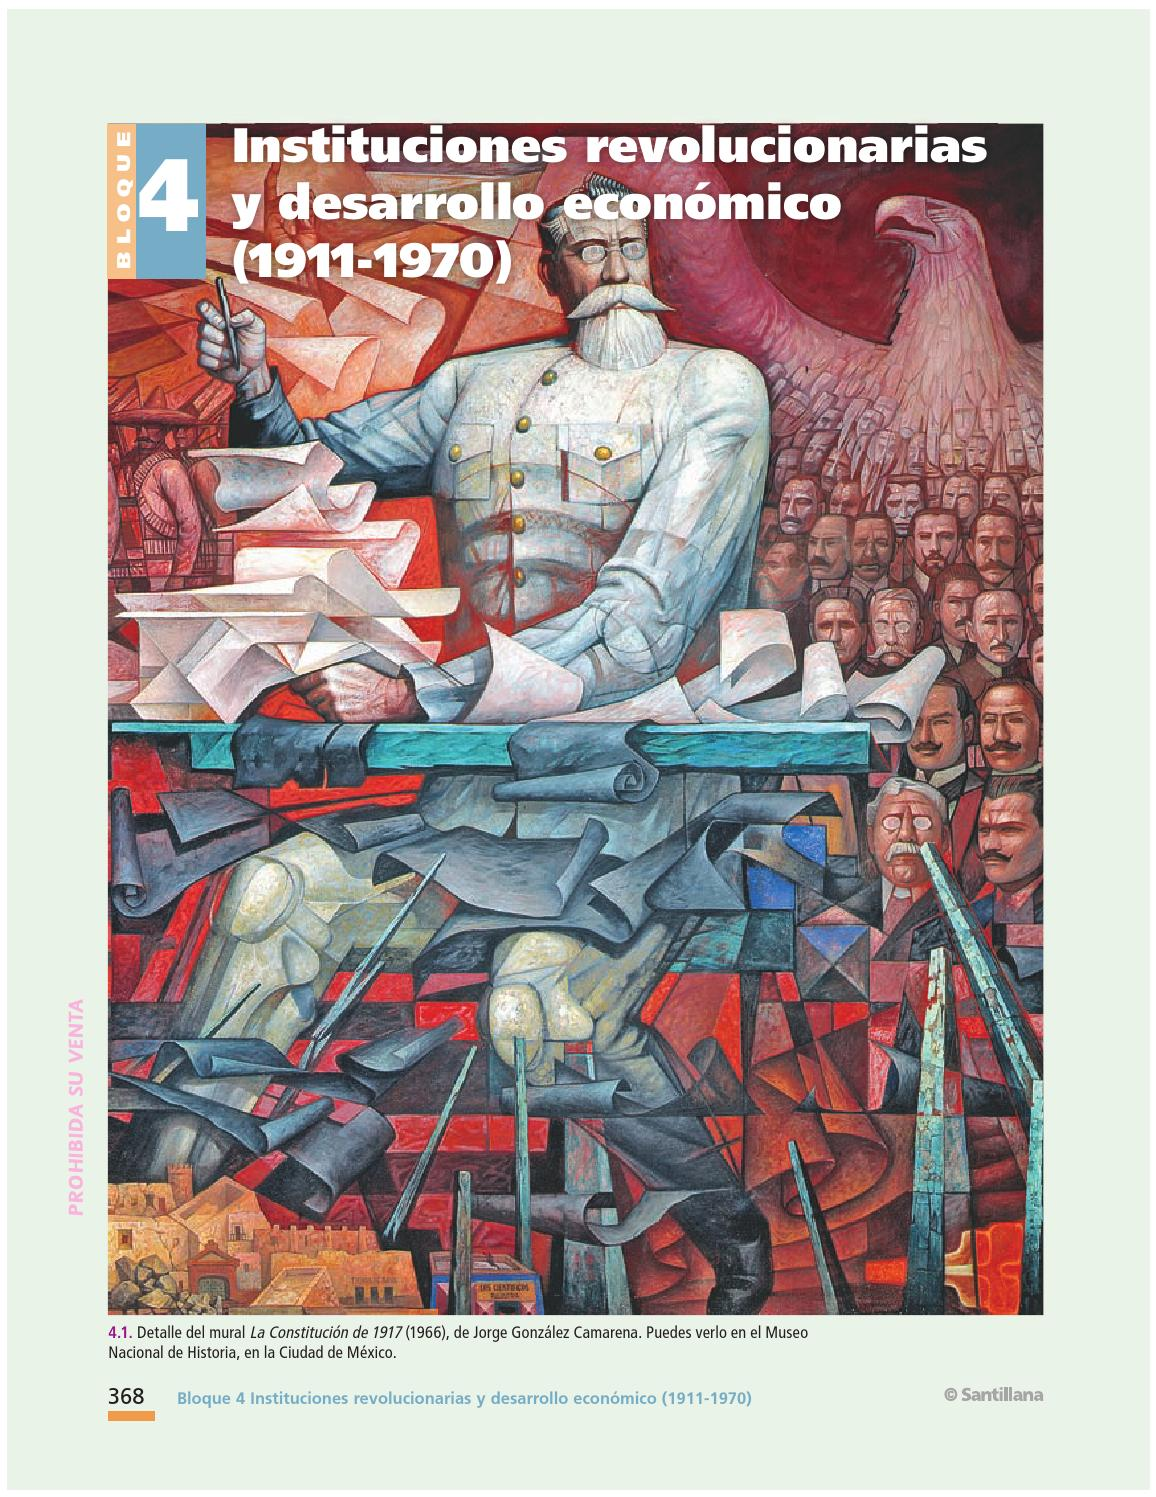 Bloque 4 ateneo3 by Victor Miclo - issuu